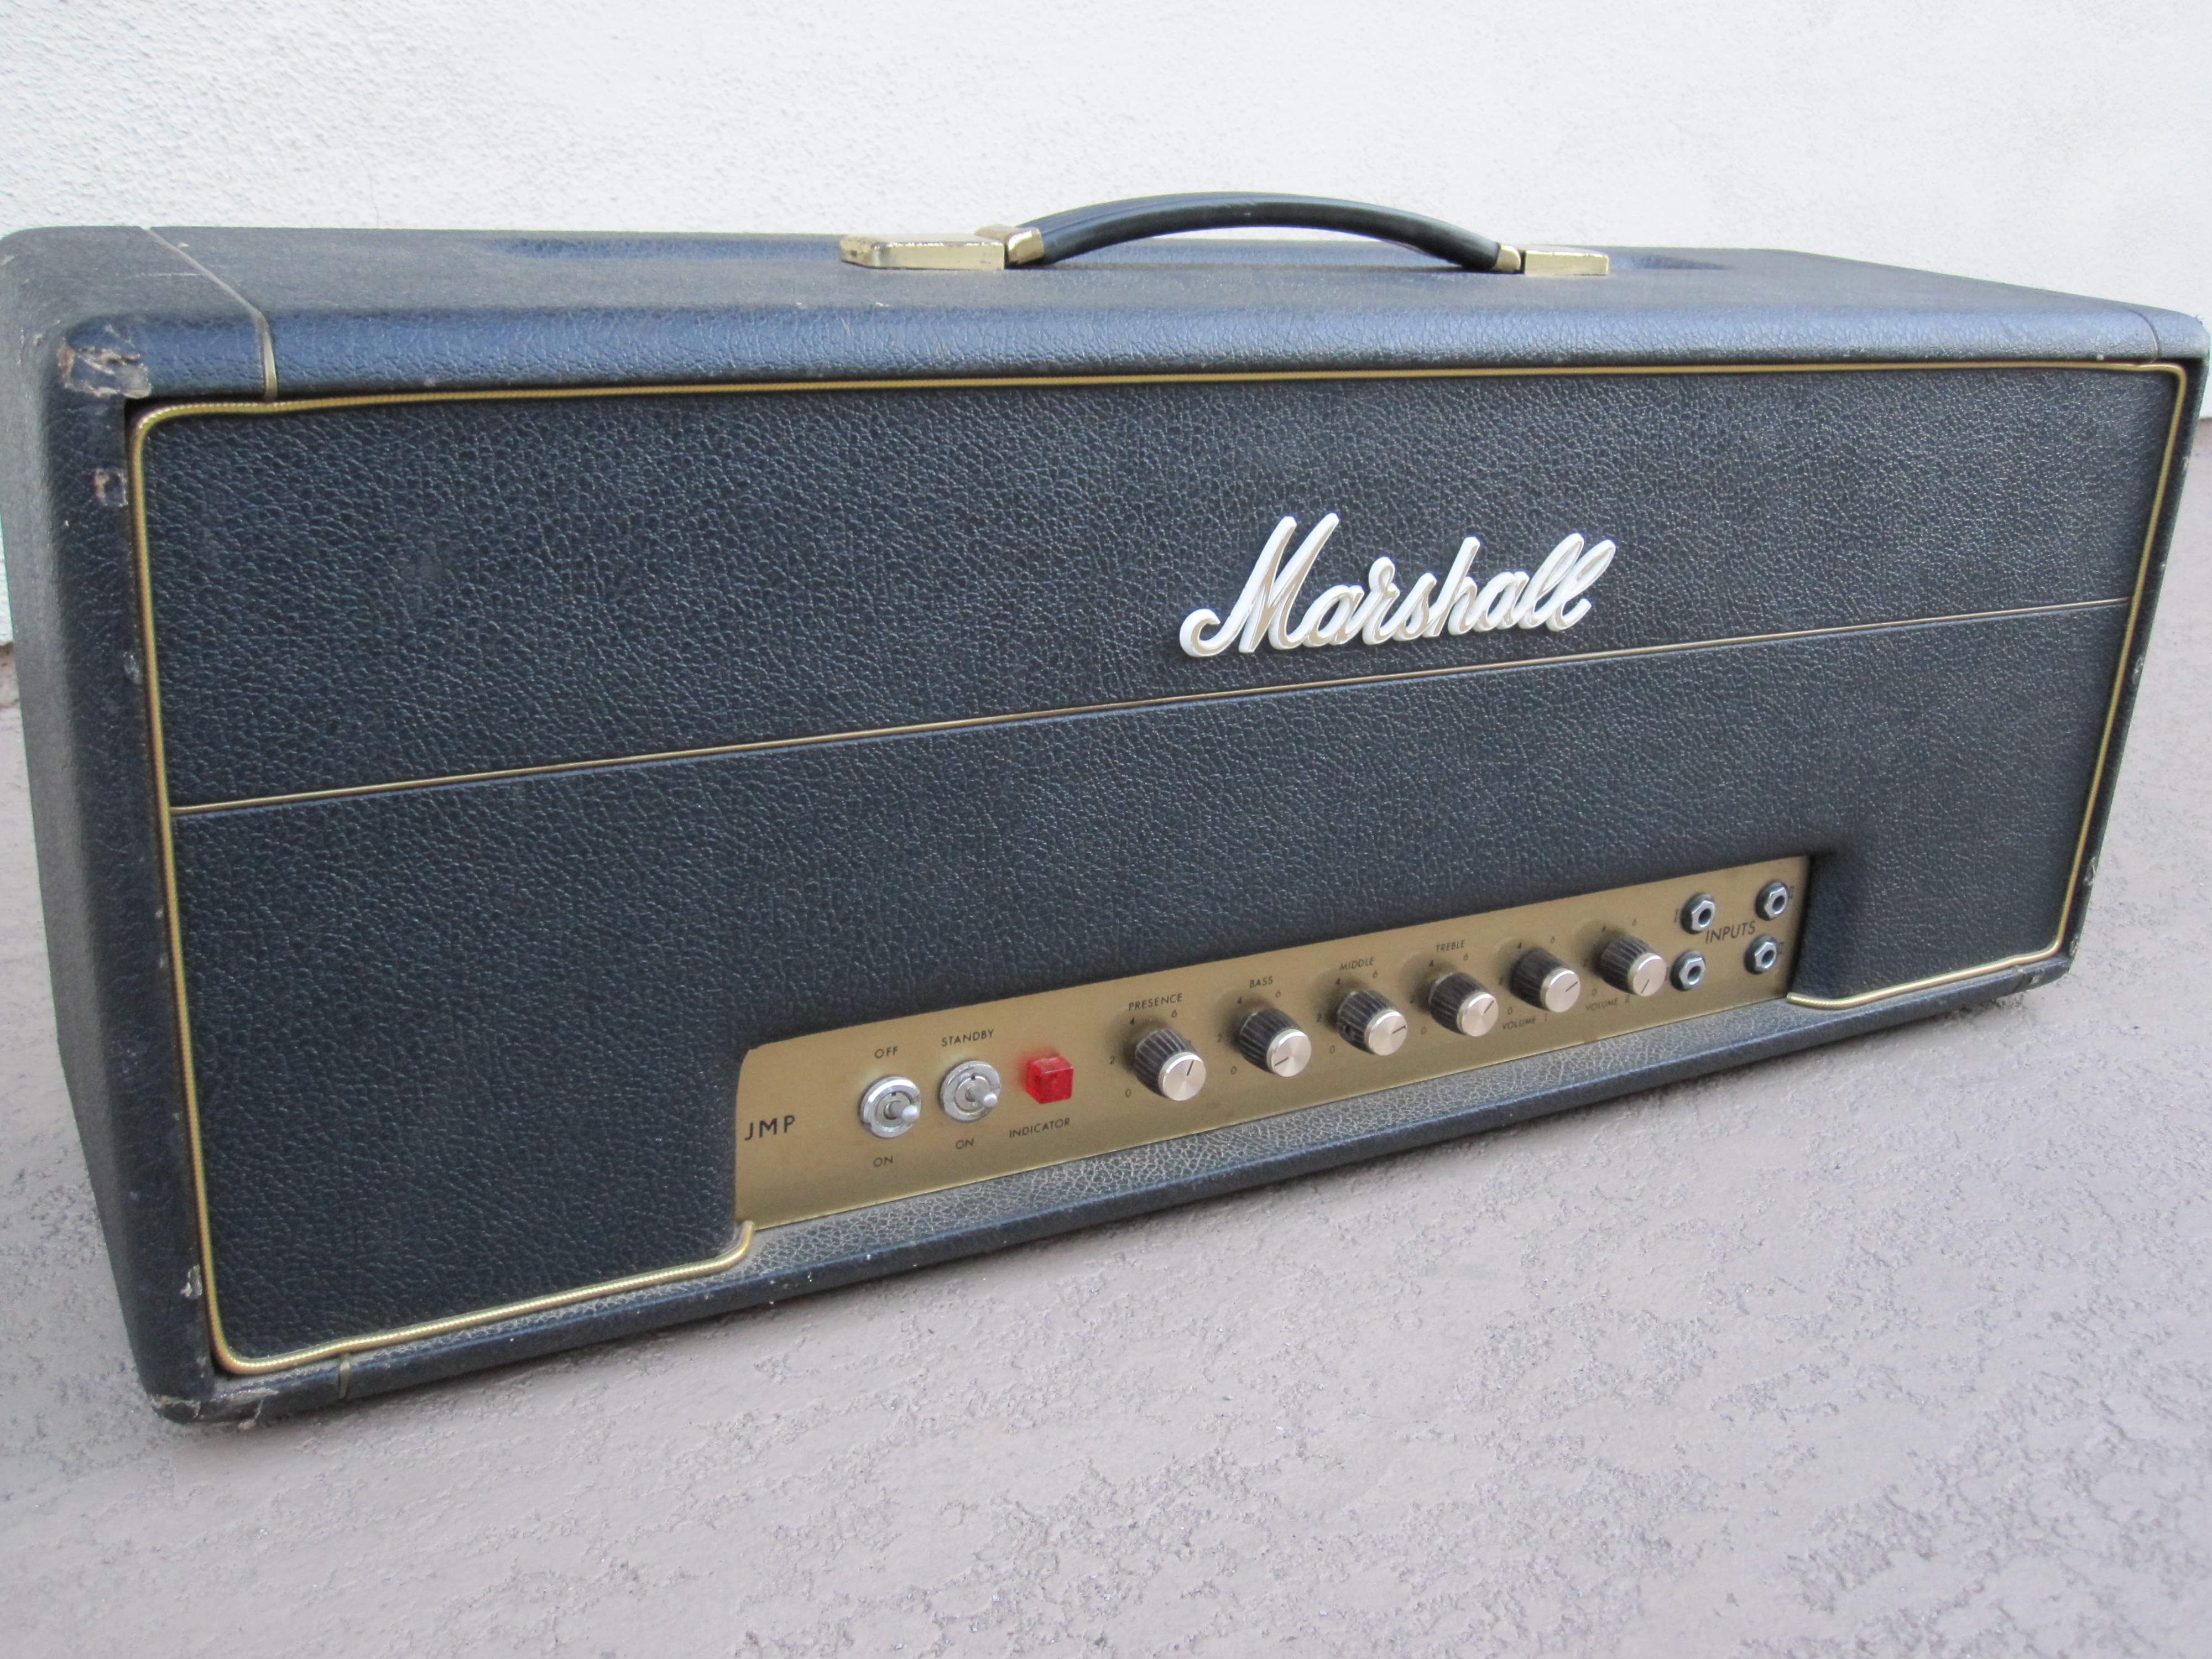 1970 Marshall VINTAGE 100w SUPER LEAD AMP AMPLIFIER > Amps